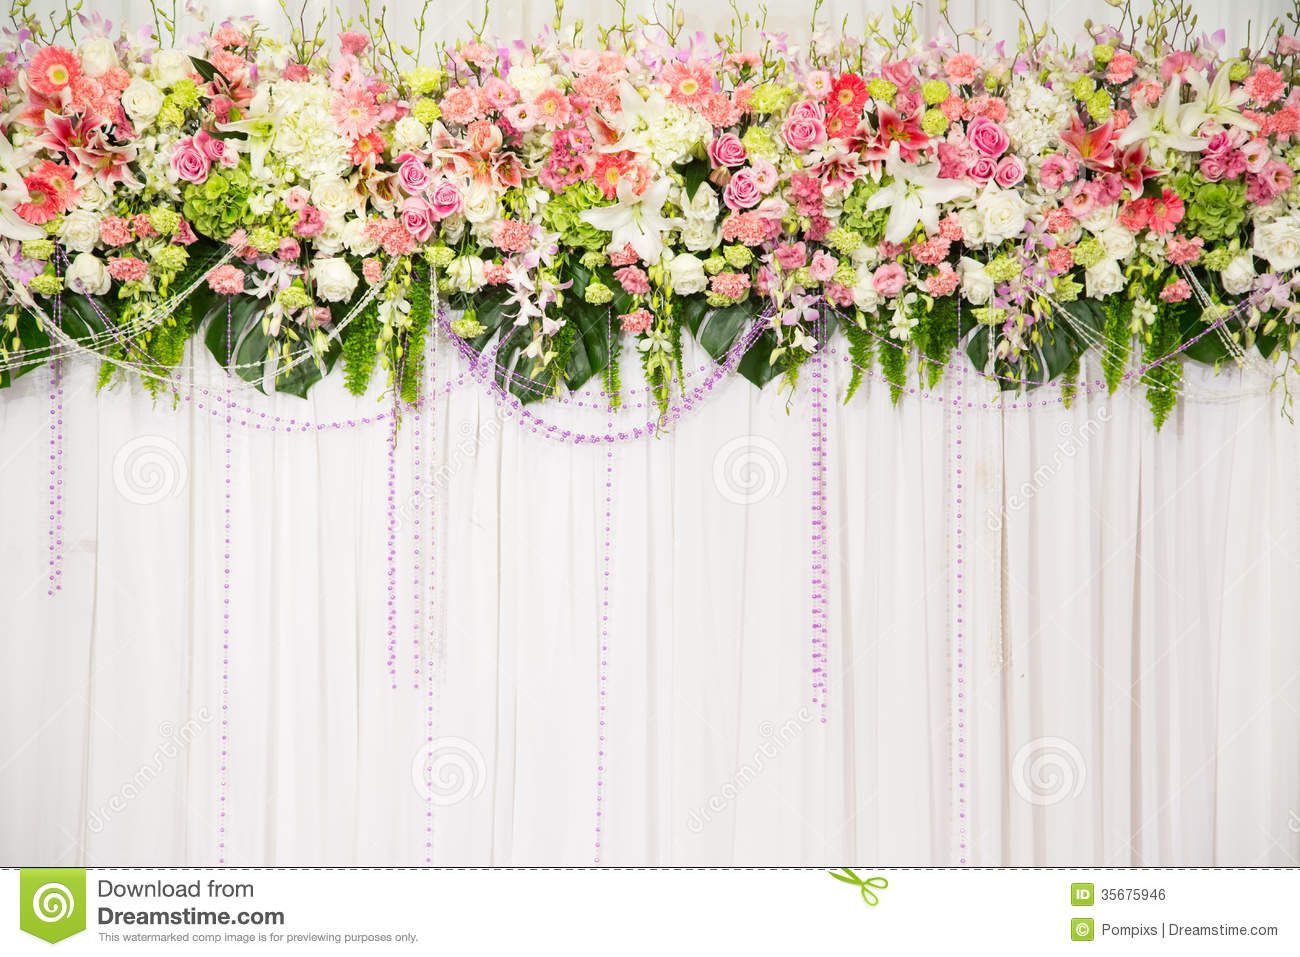 Wedding flower backgrounds wallpapersafari for Background decoration images